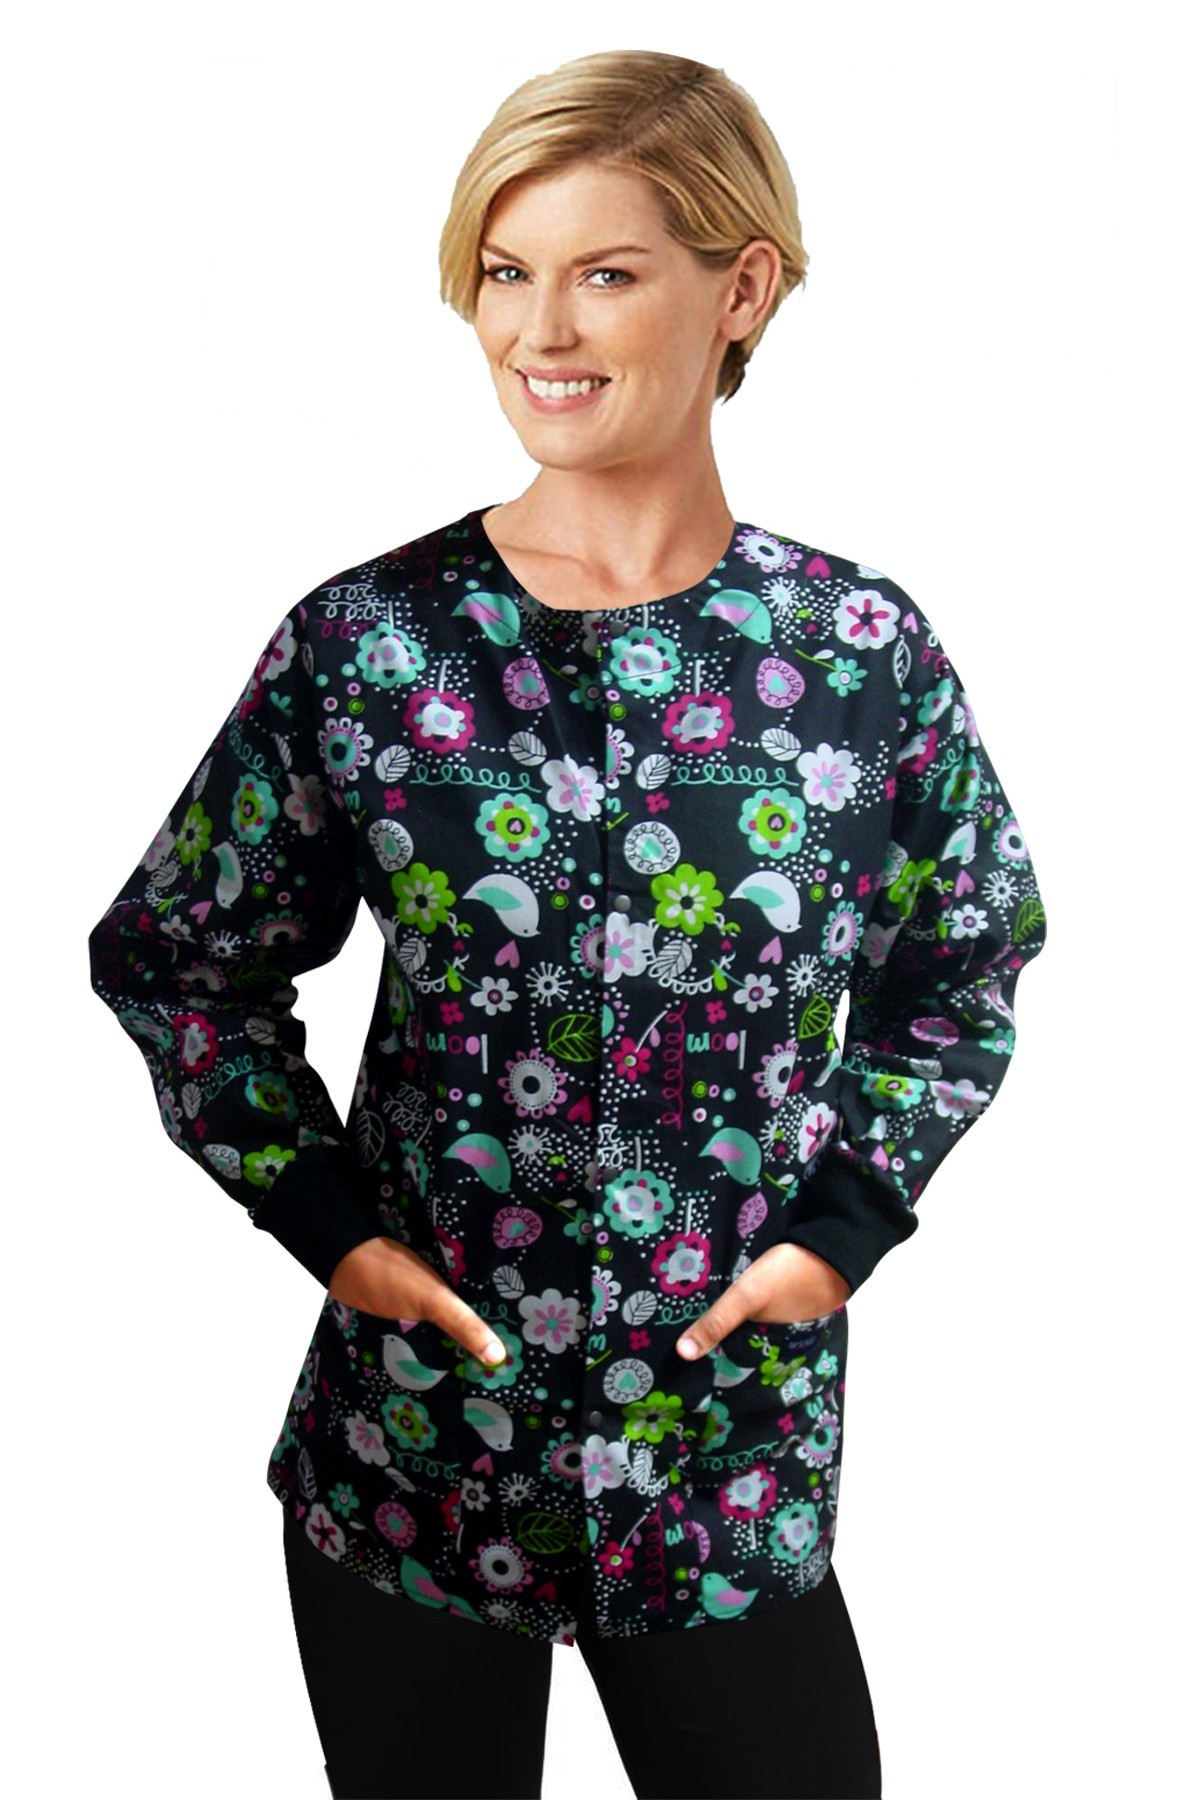 Jacket 2 pocket printed unisex full sleeve in bird print with rib